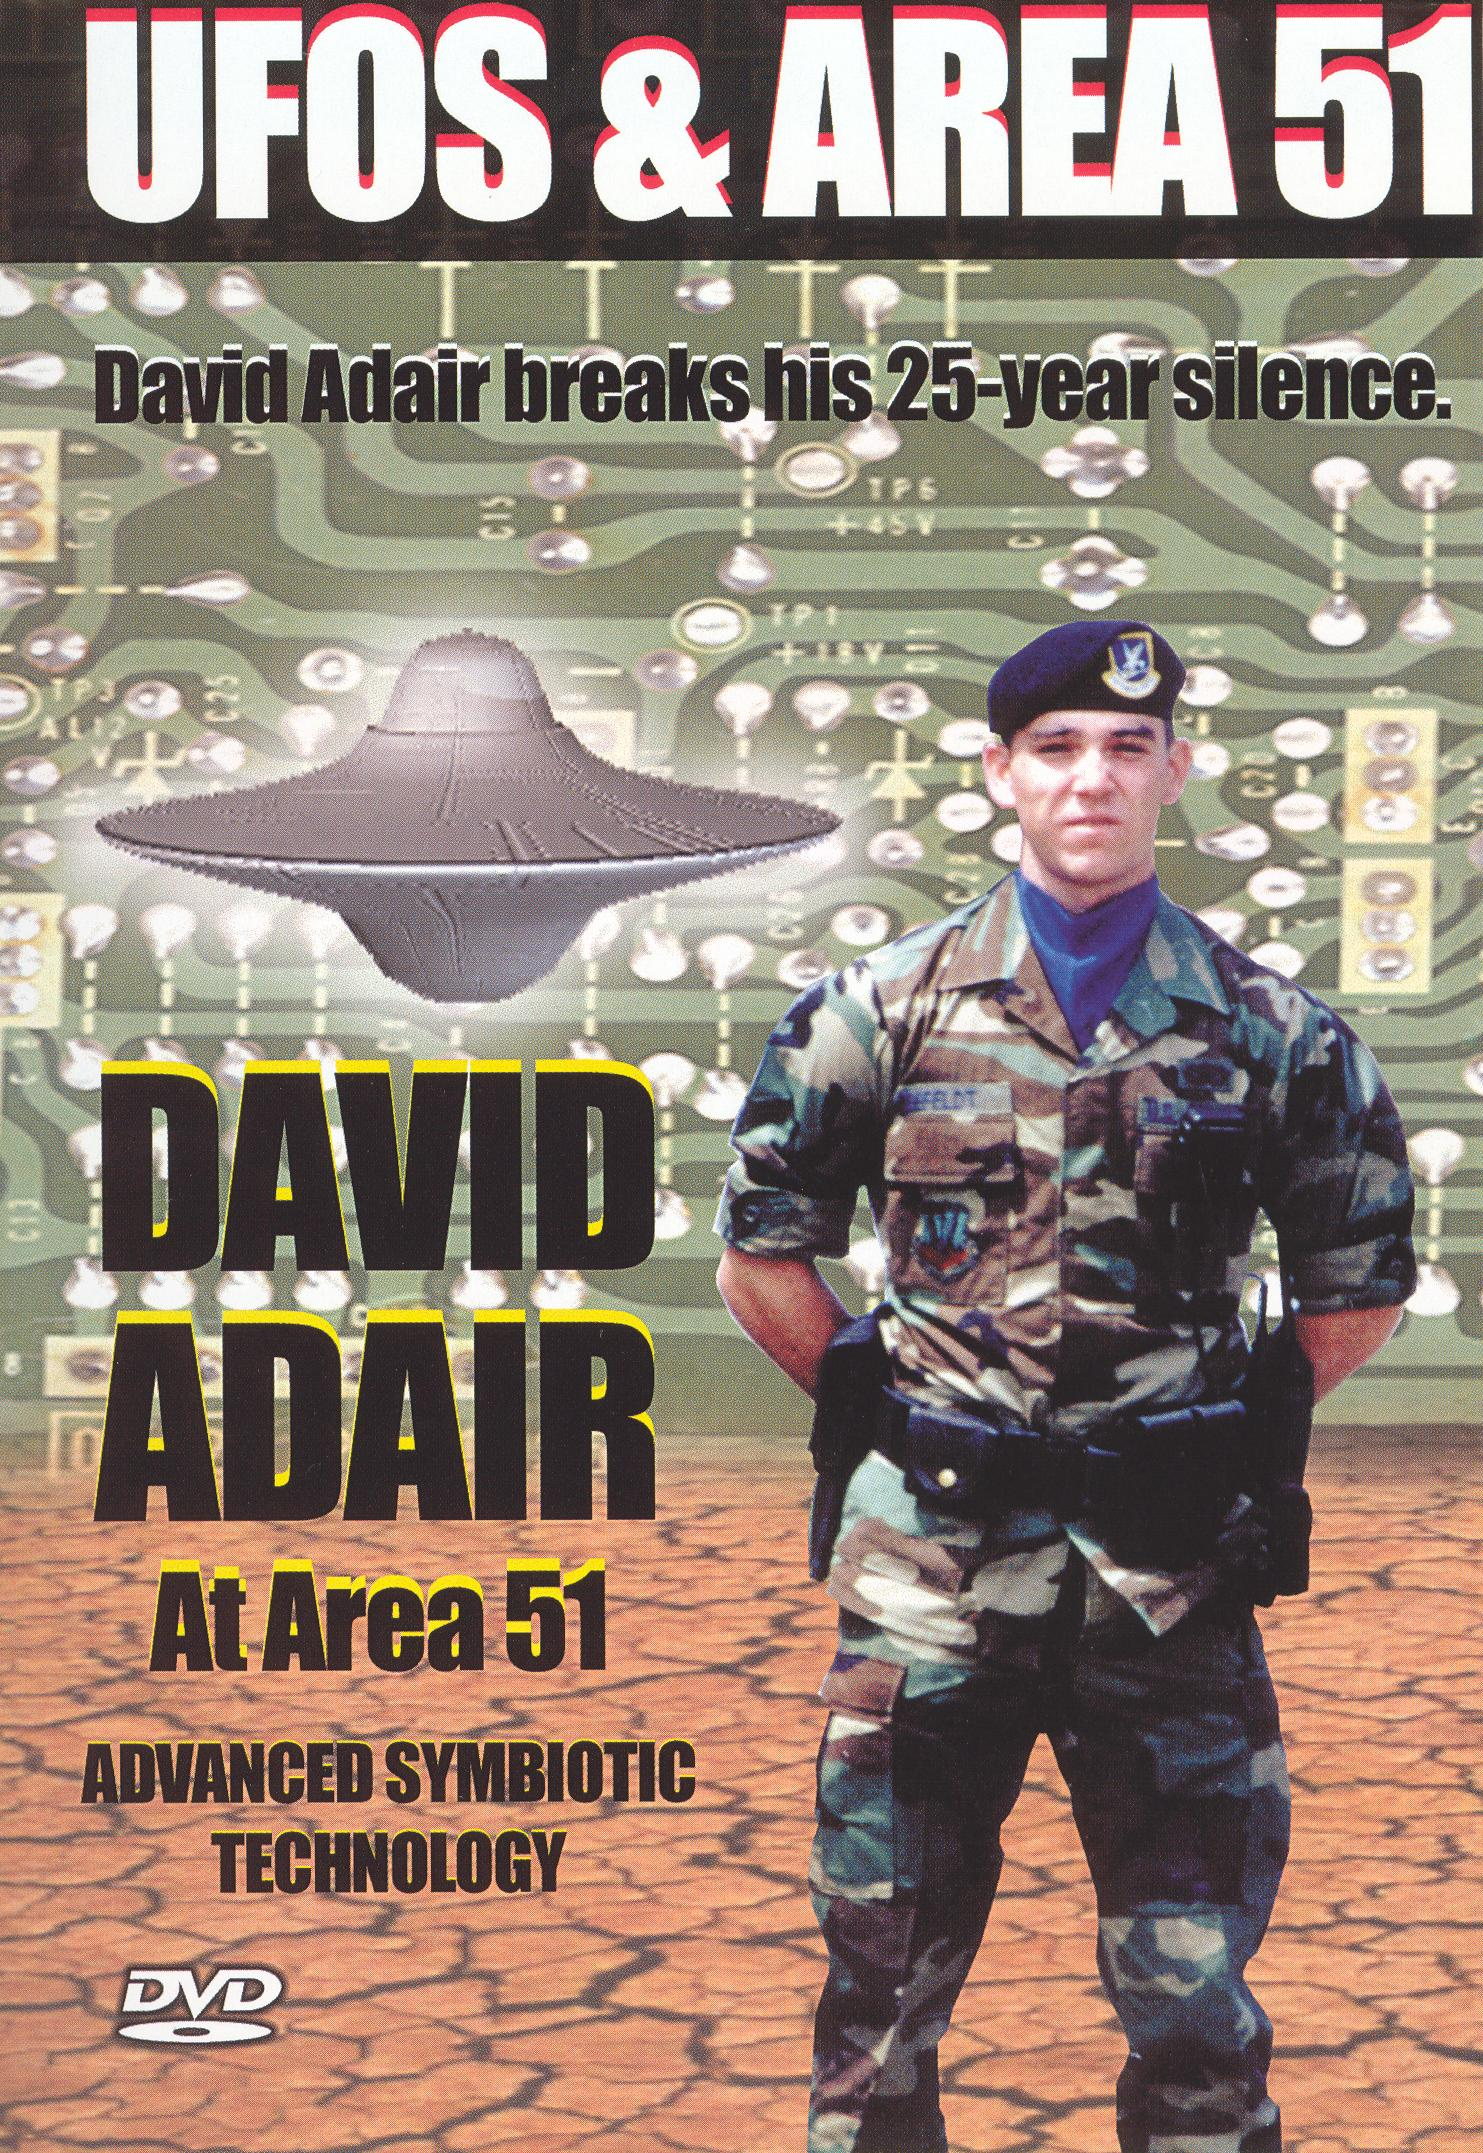 UFOs and Area 51, Vol. 3: David Adair At Area 51